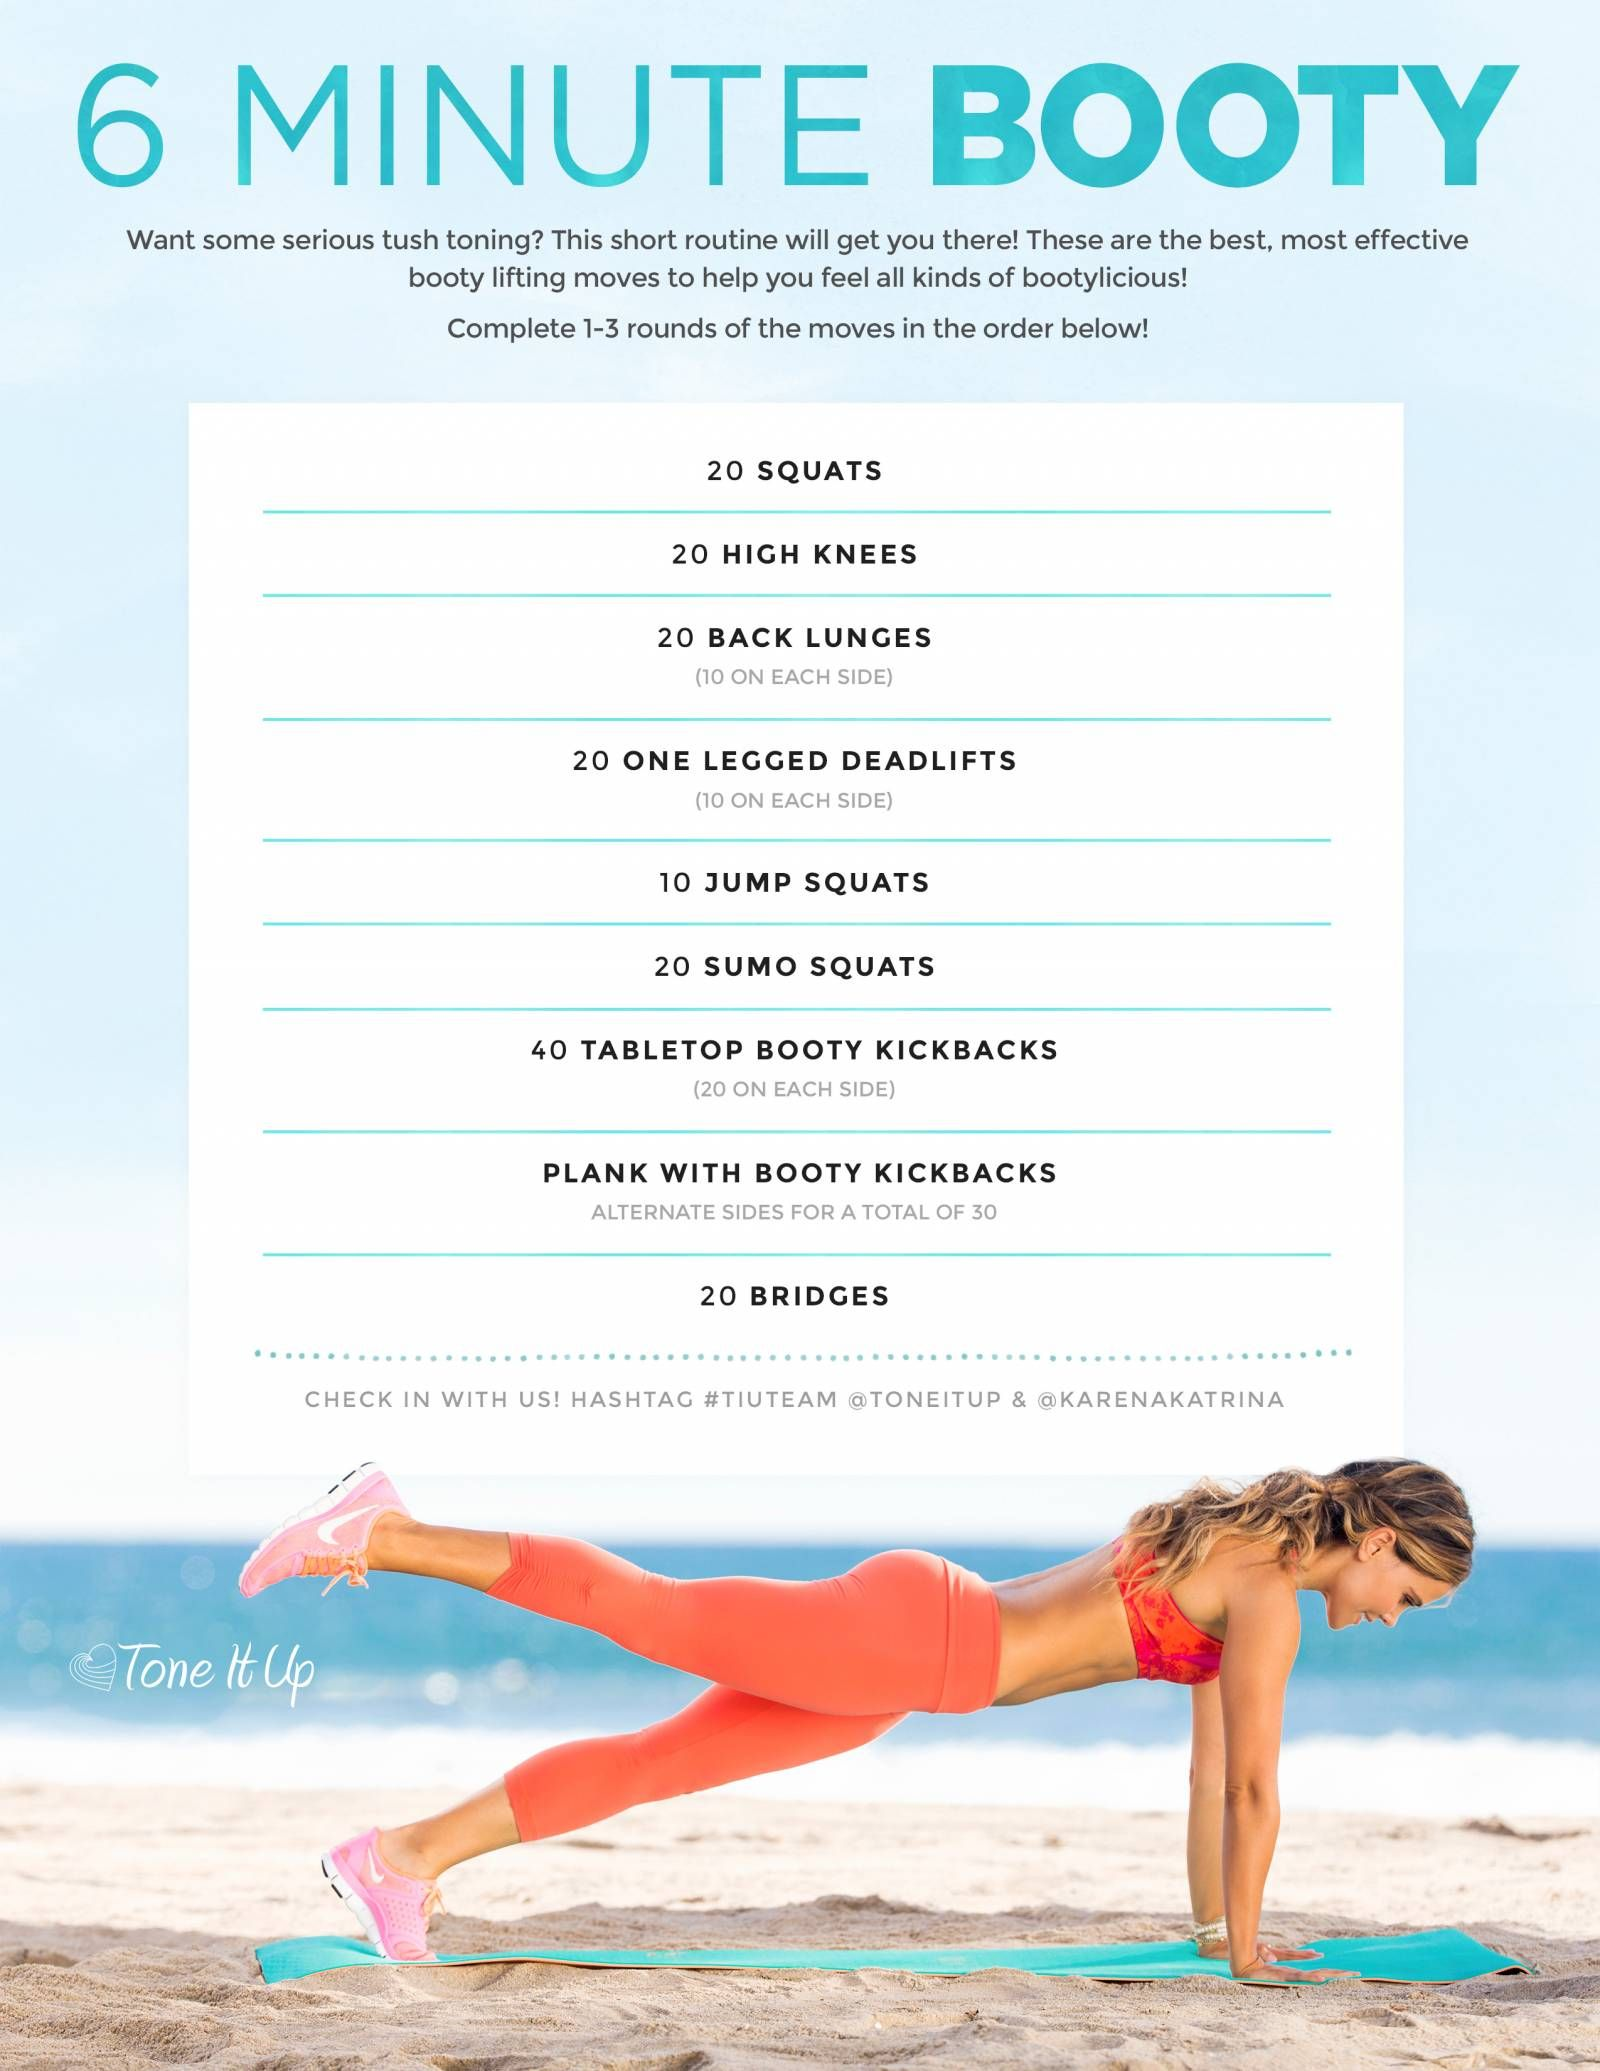 New workout minute booty fit up your life pinterest